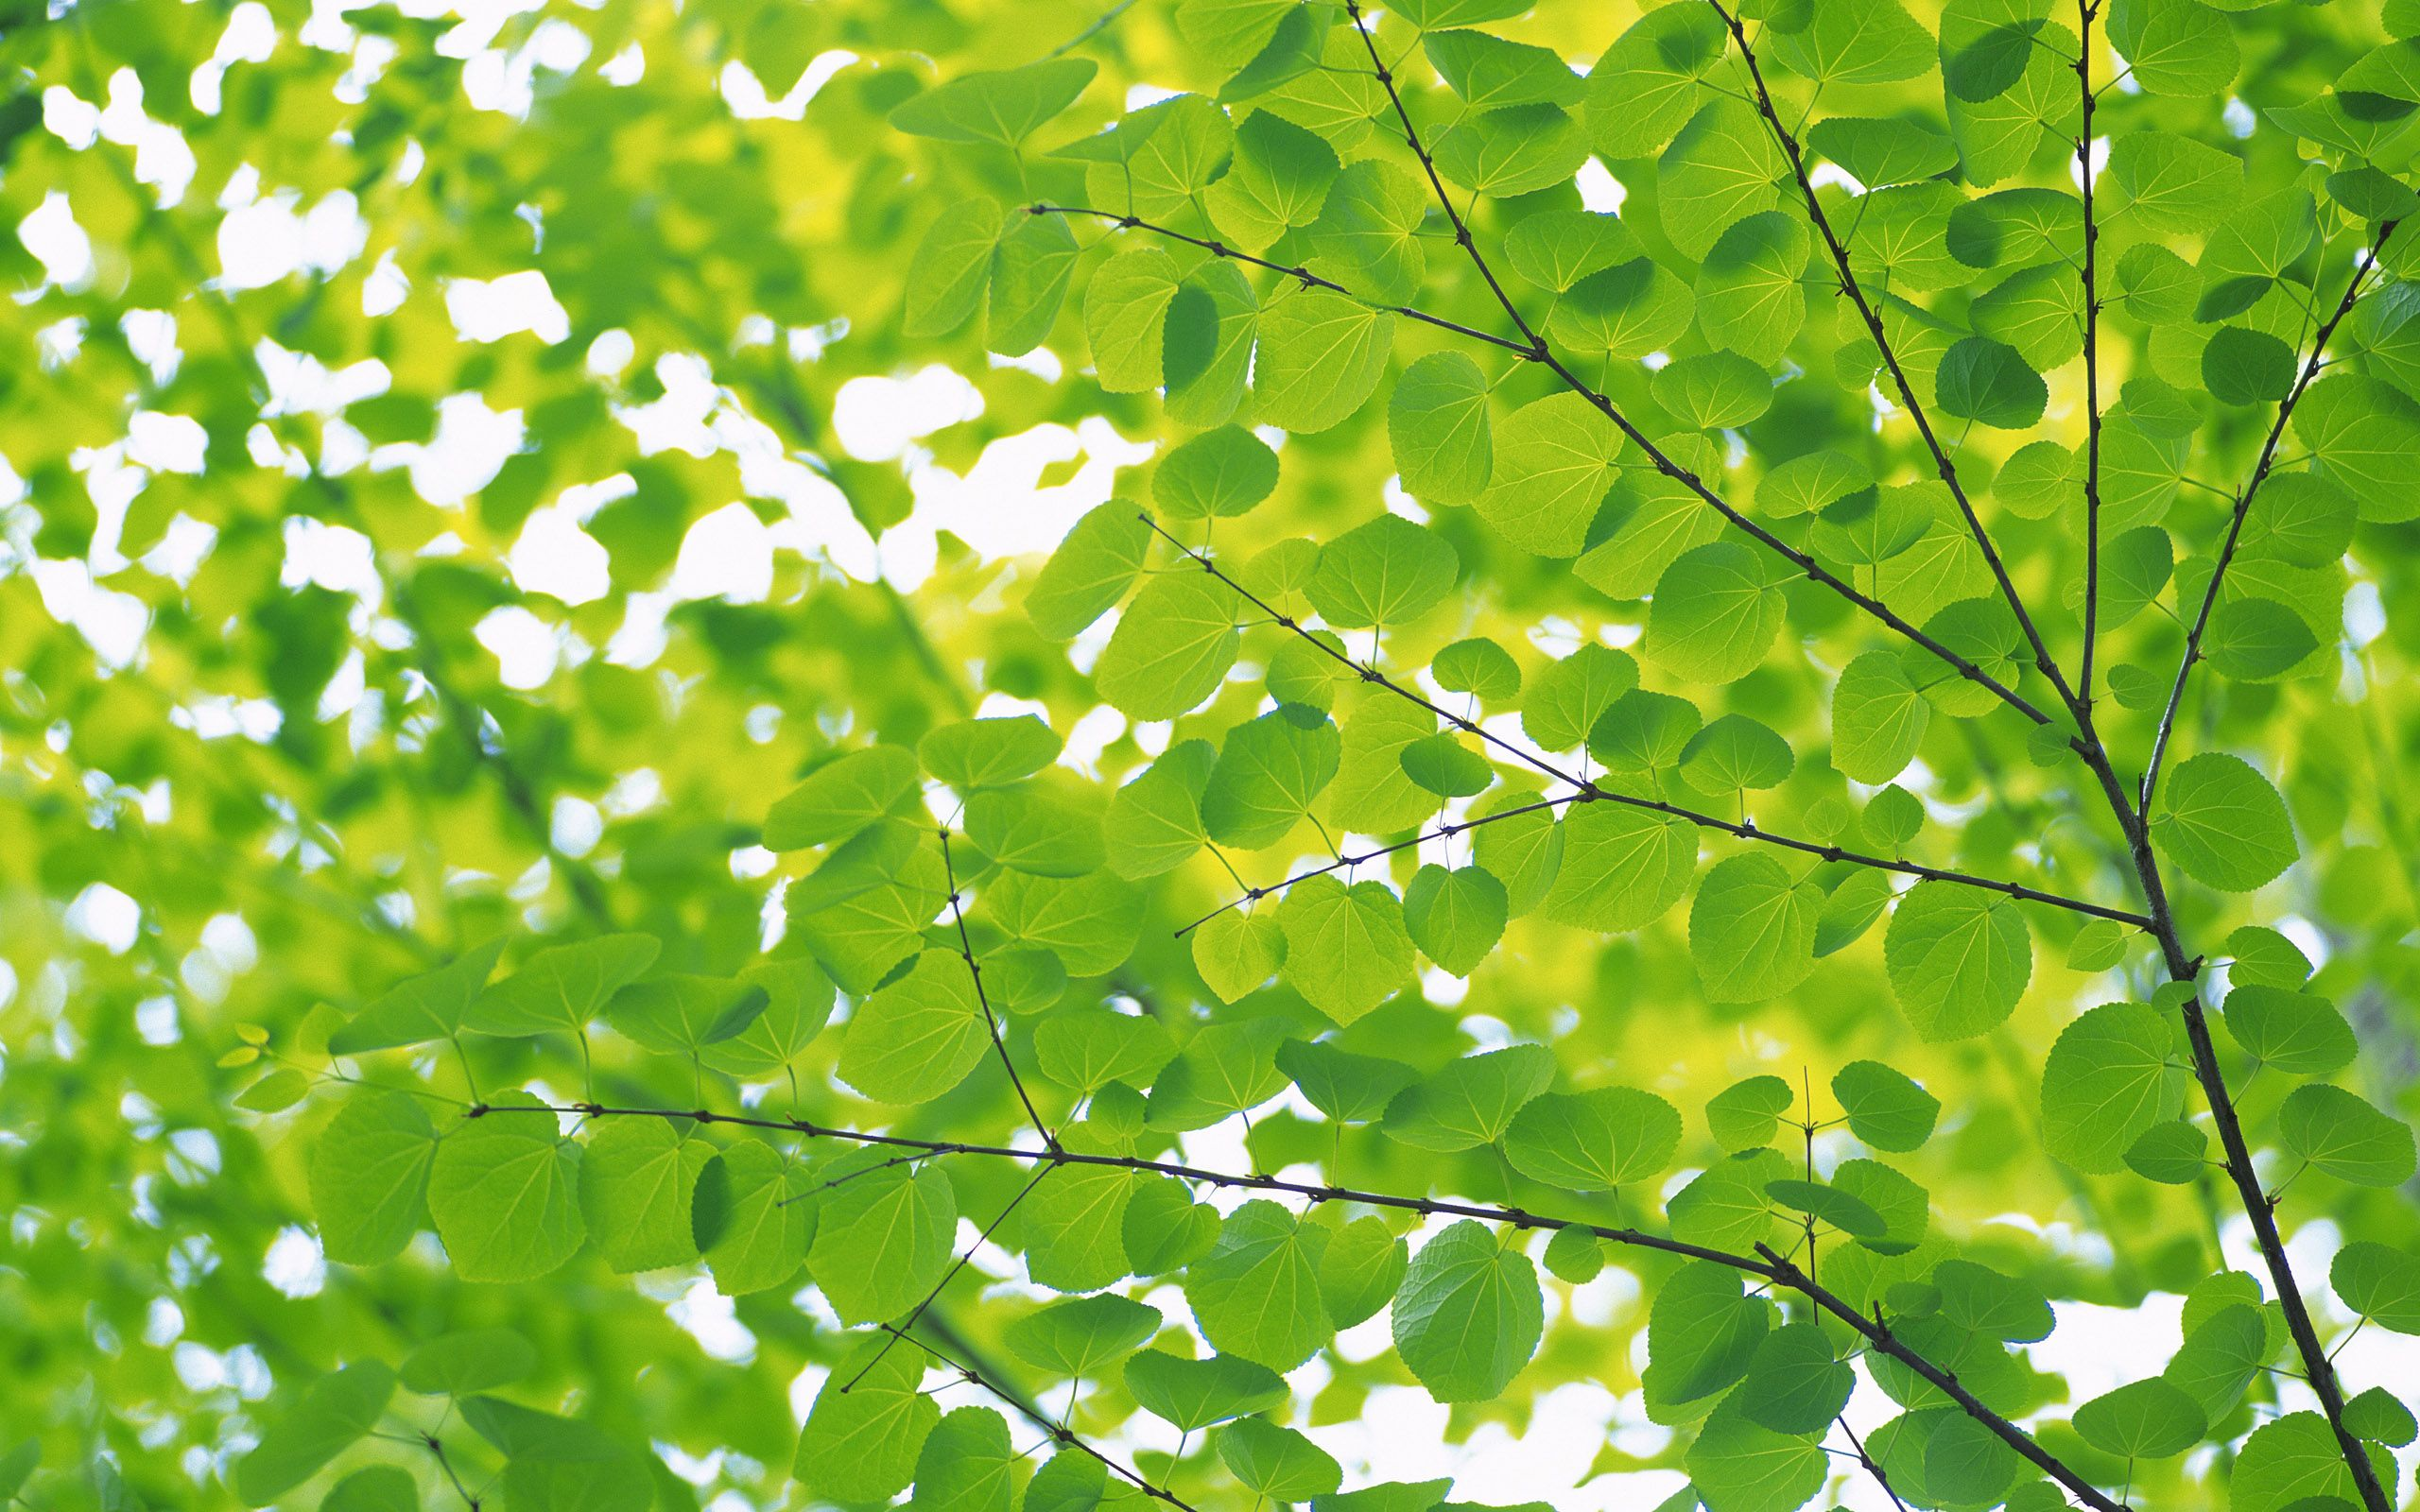 Green Tree Green Nature Nature Leaves